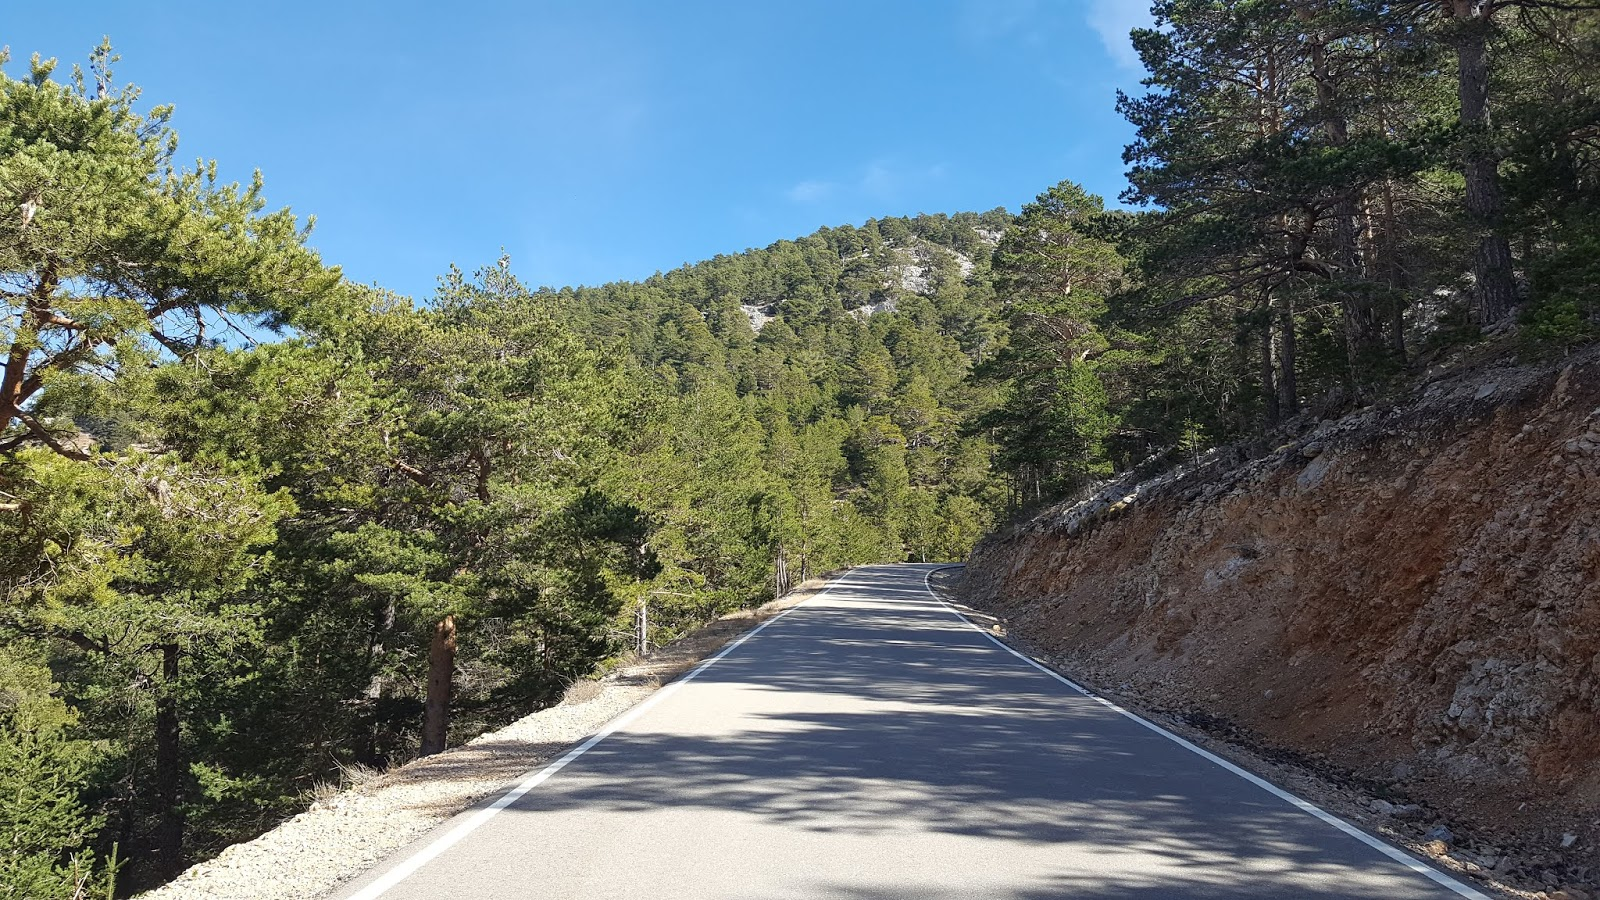 Straight stretch of tree-lined road on climb to Javalambre Astrophysical Observatory